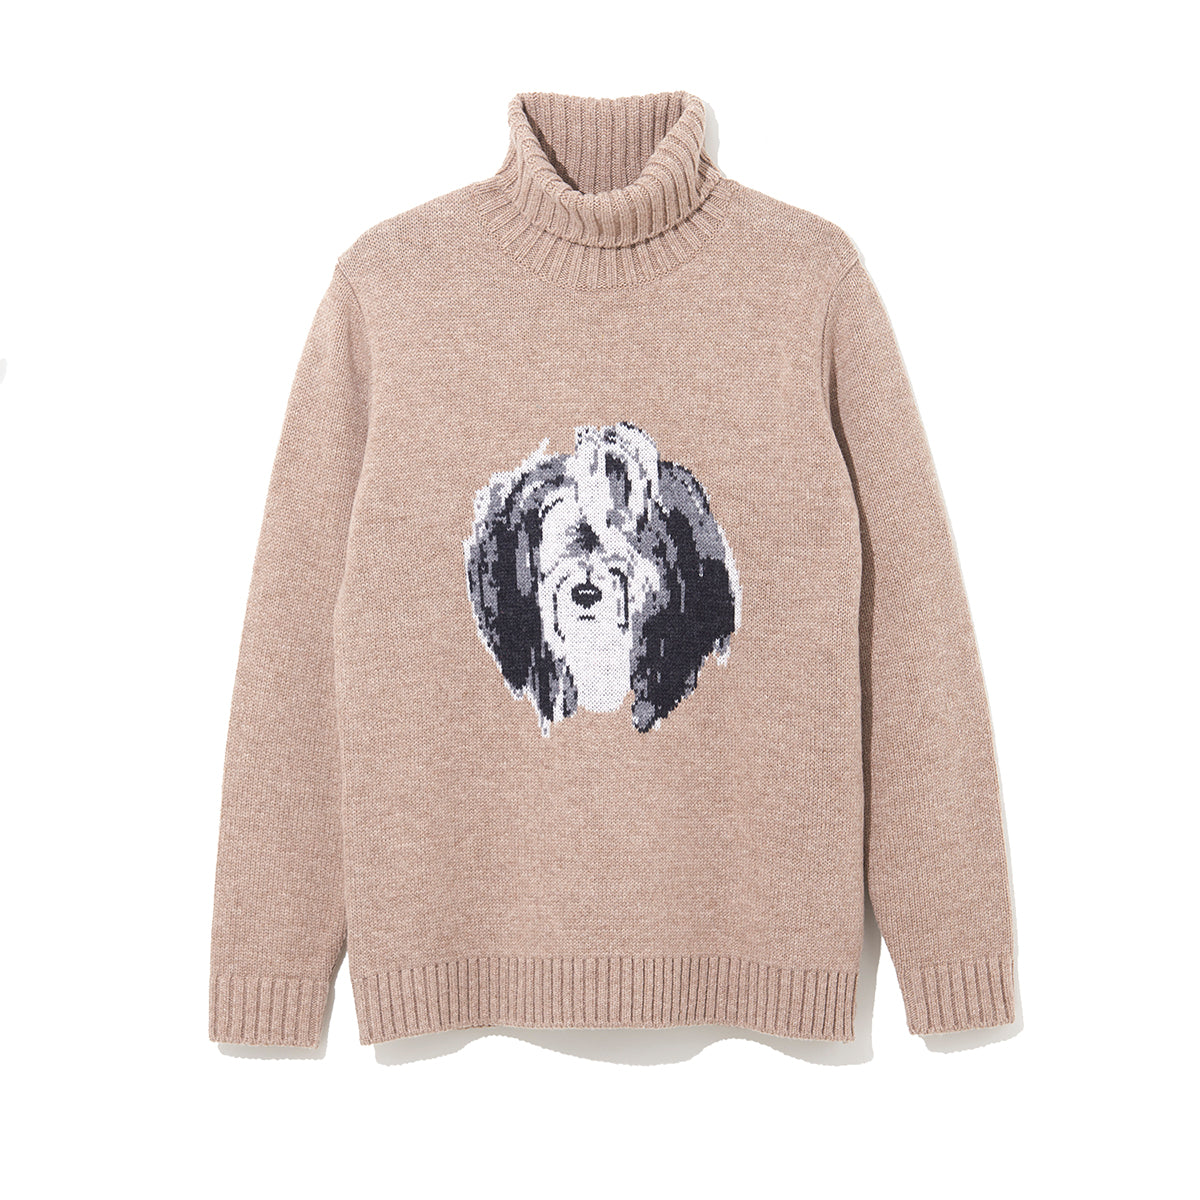 ILLUSTRATION TURTLE NECK KNIT C by Jody Asano / BEIGE (21A-NSA-KN-04)